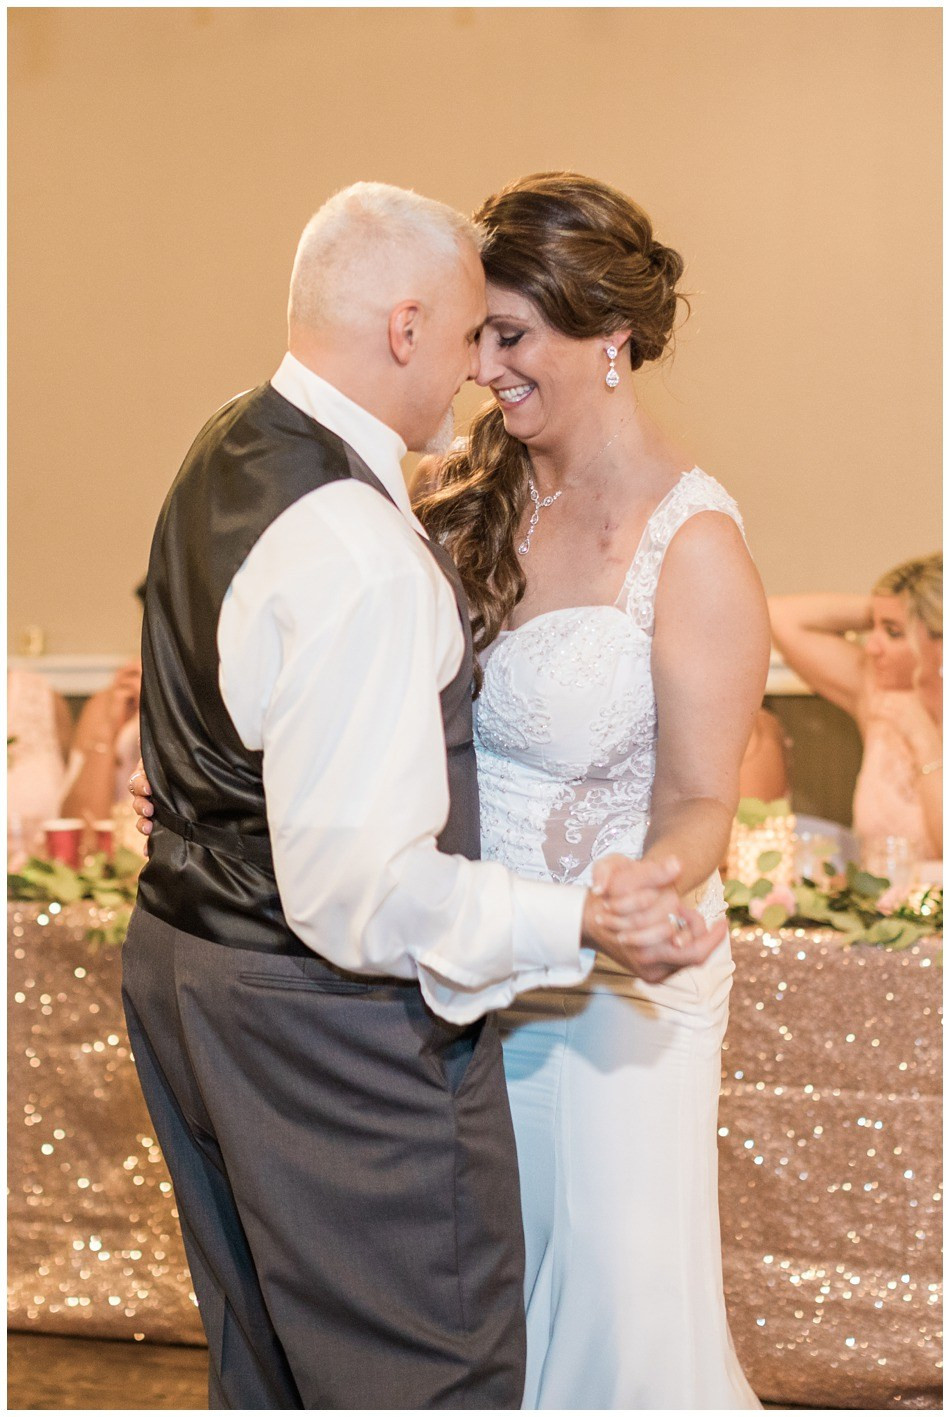 A bride and groom share their first dance at a wedding at Hidden Meadows in Snohomish, a wedding venue near Seattle.